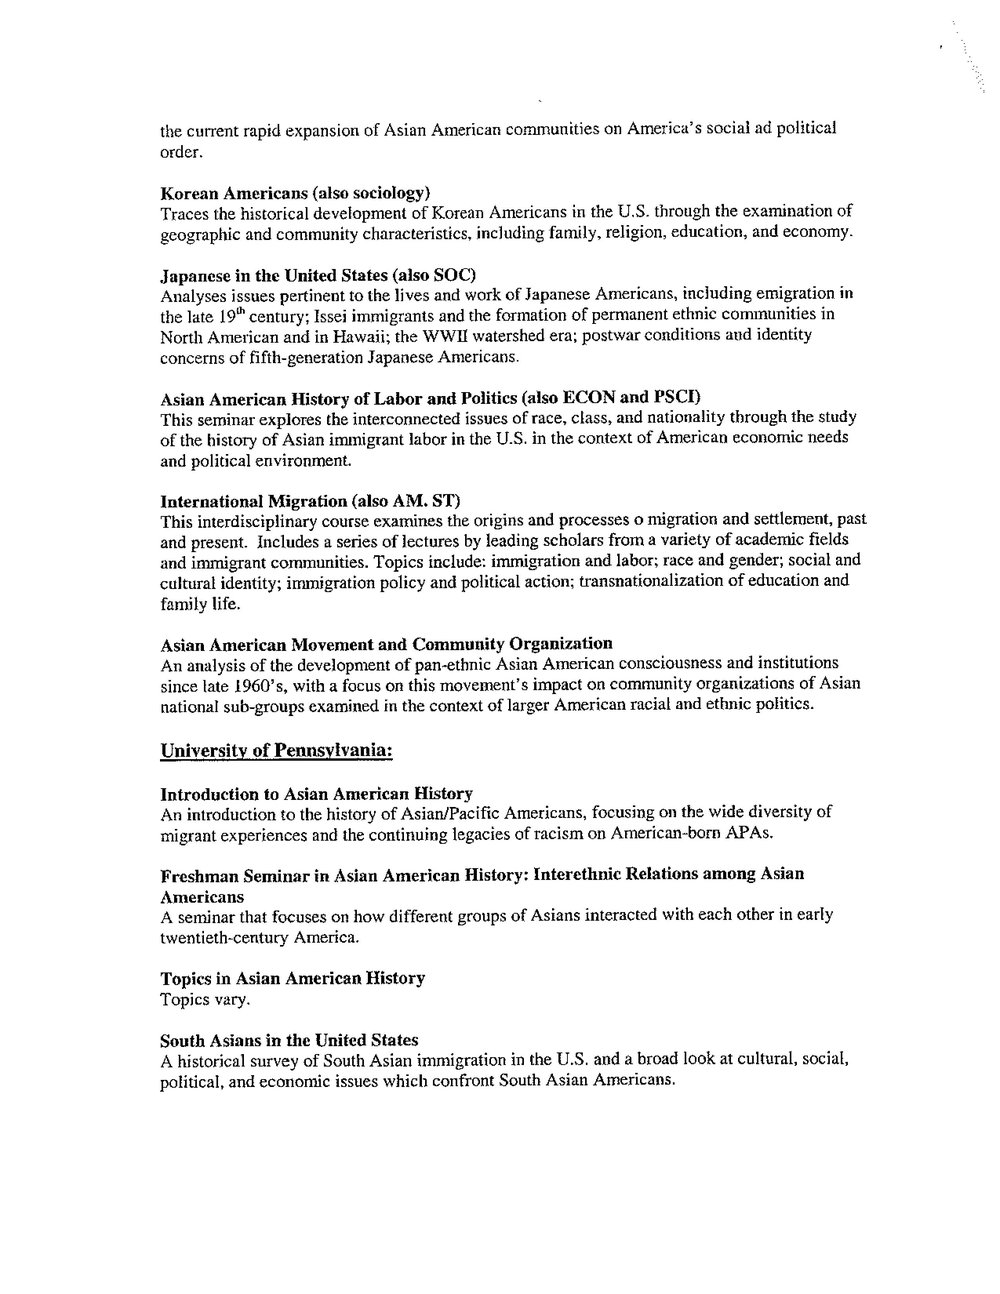 Possible Courses for movement-page-008.jpg